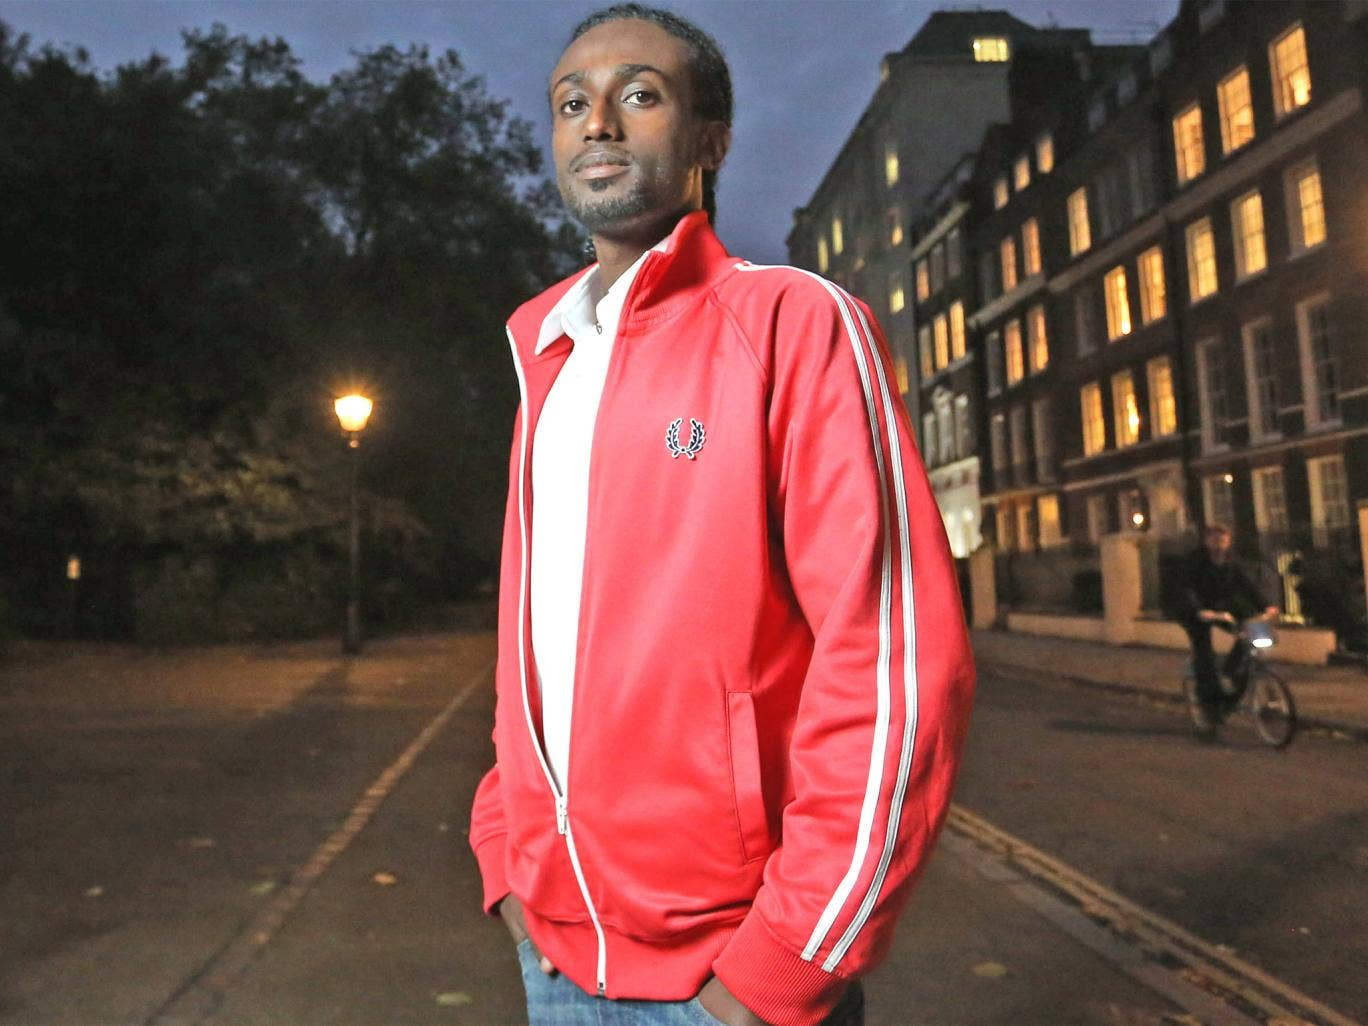 Yonas Kebede was abandoned by his father in the UK in 2004. He says he chose not to study to be a pilot at university because the fees are so high